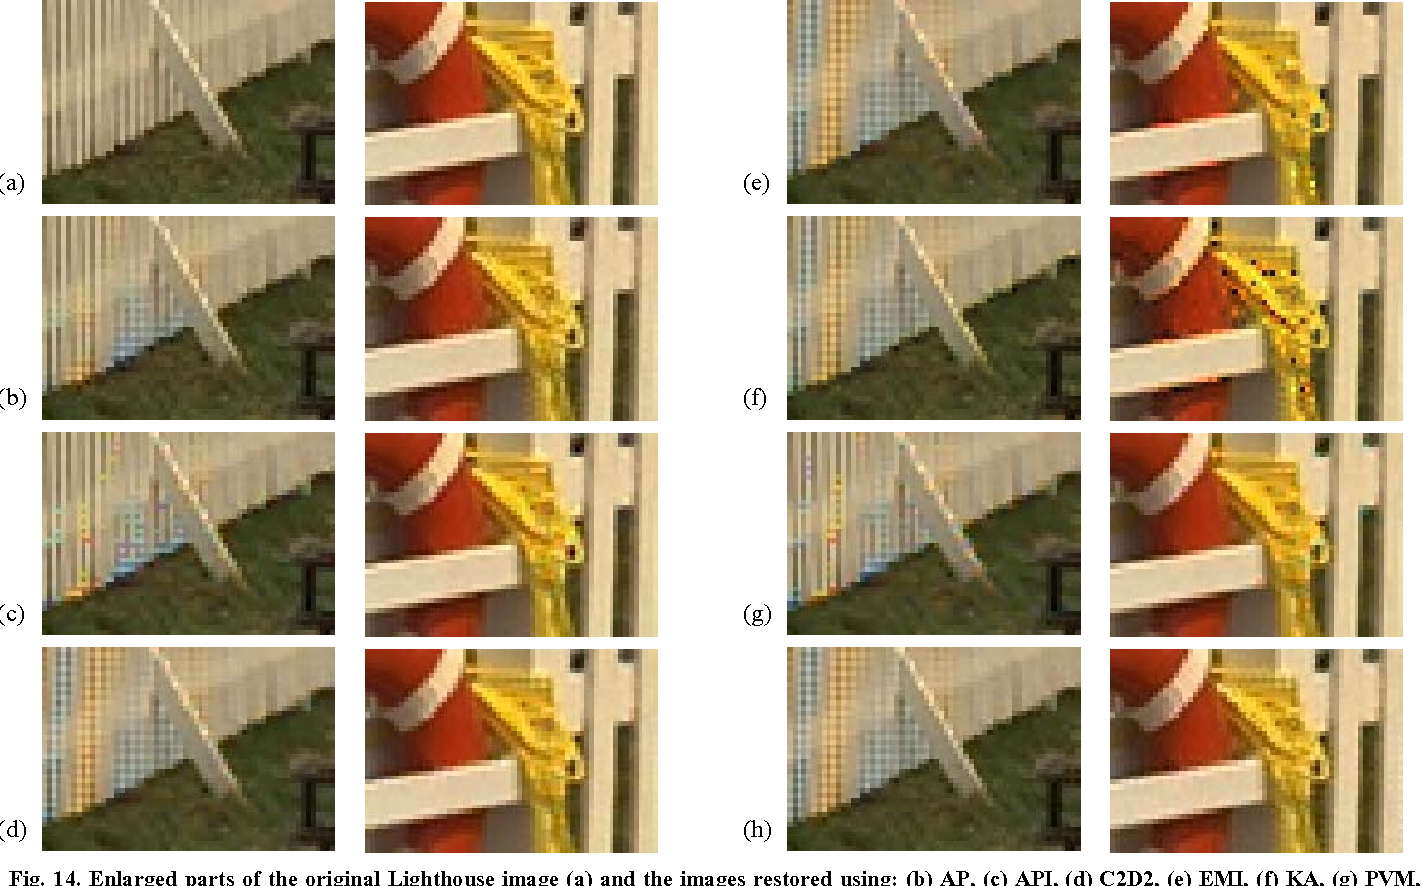 Fig. 14. Enlarged parts of the original Lighthouse image (a) and the images restored using: (b) AP, (c) API, (d) C2D2, (e) EMI, (f) KA, (g) PVM, (h) the proposed framework.